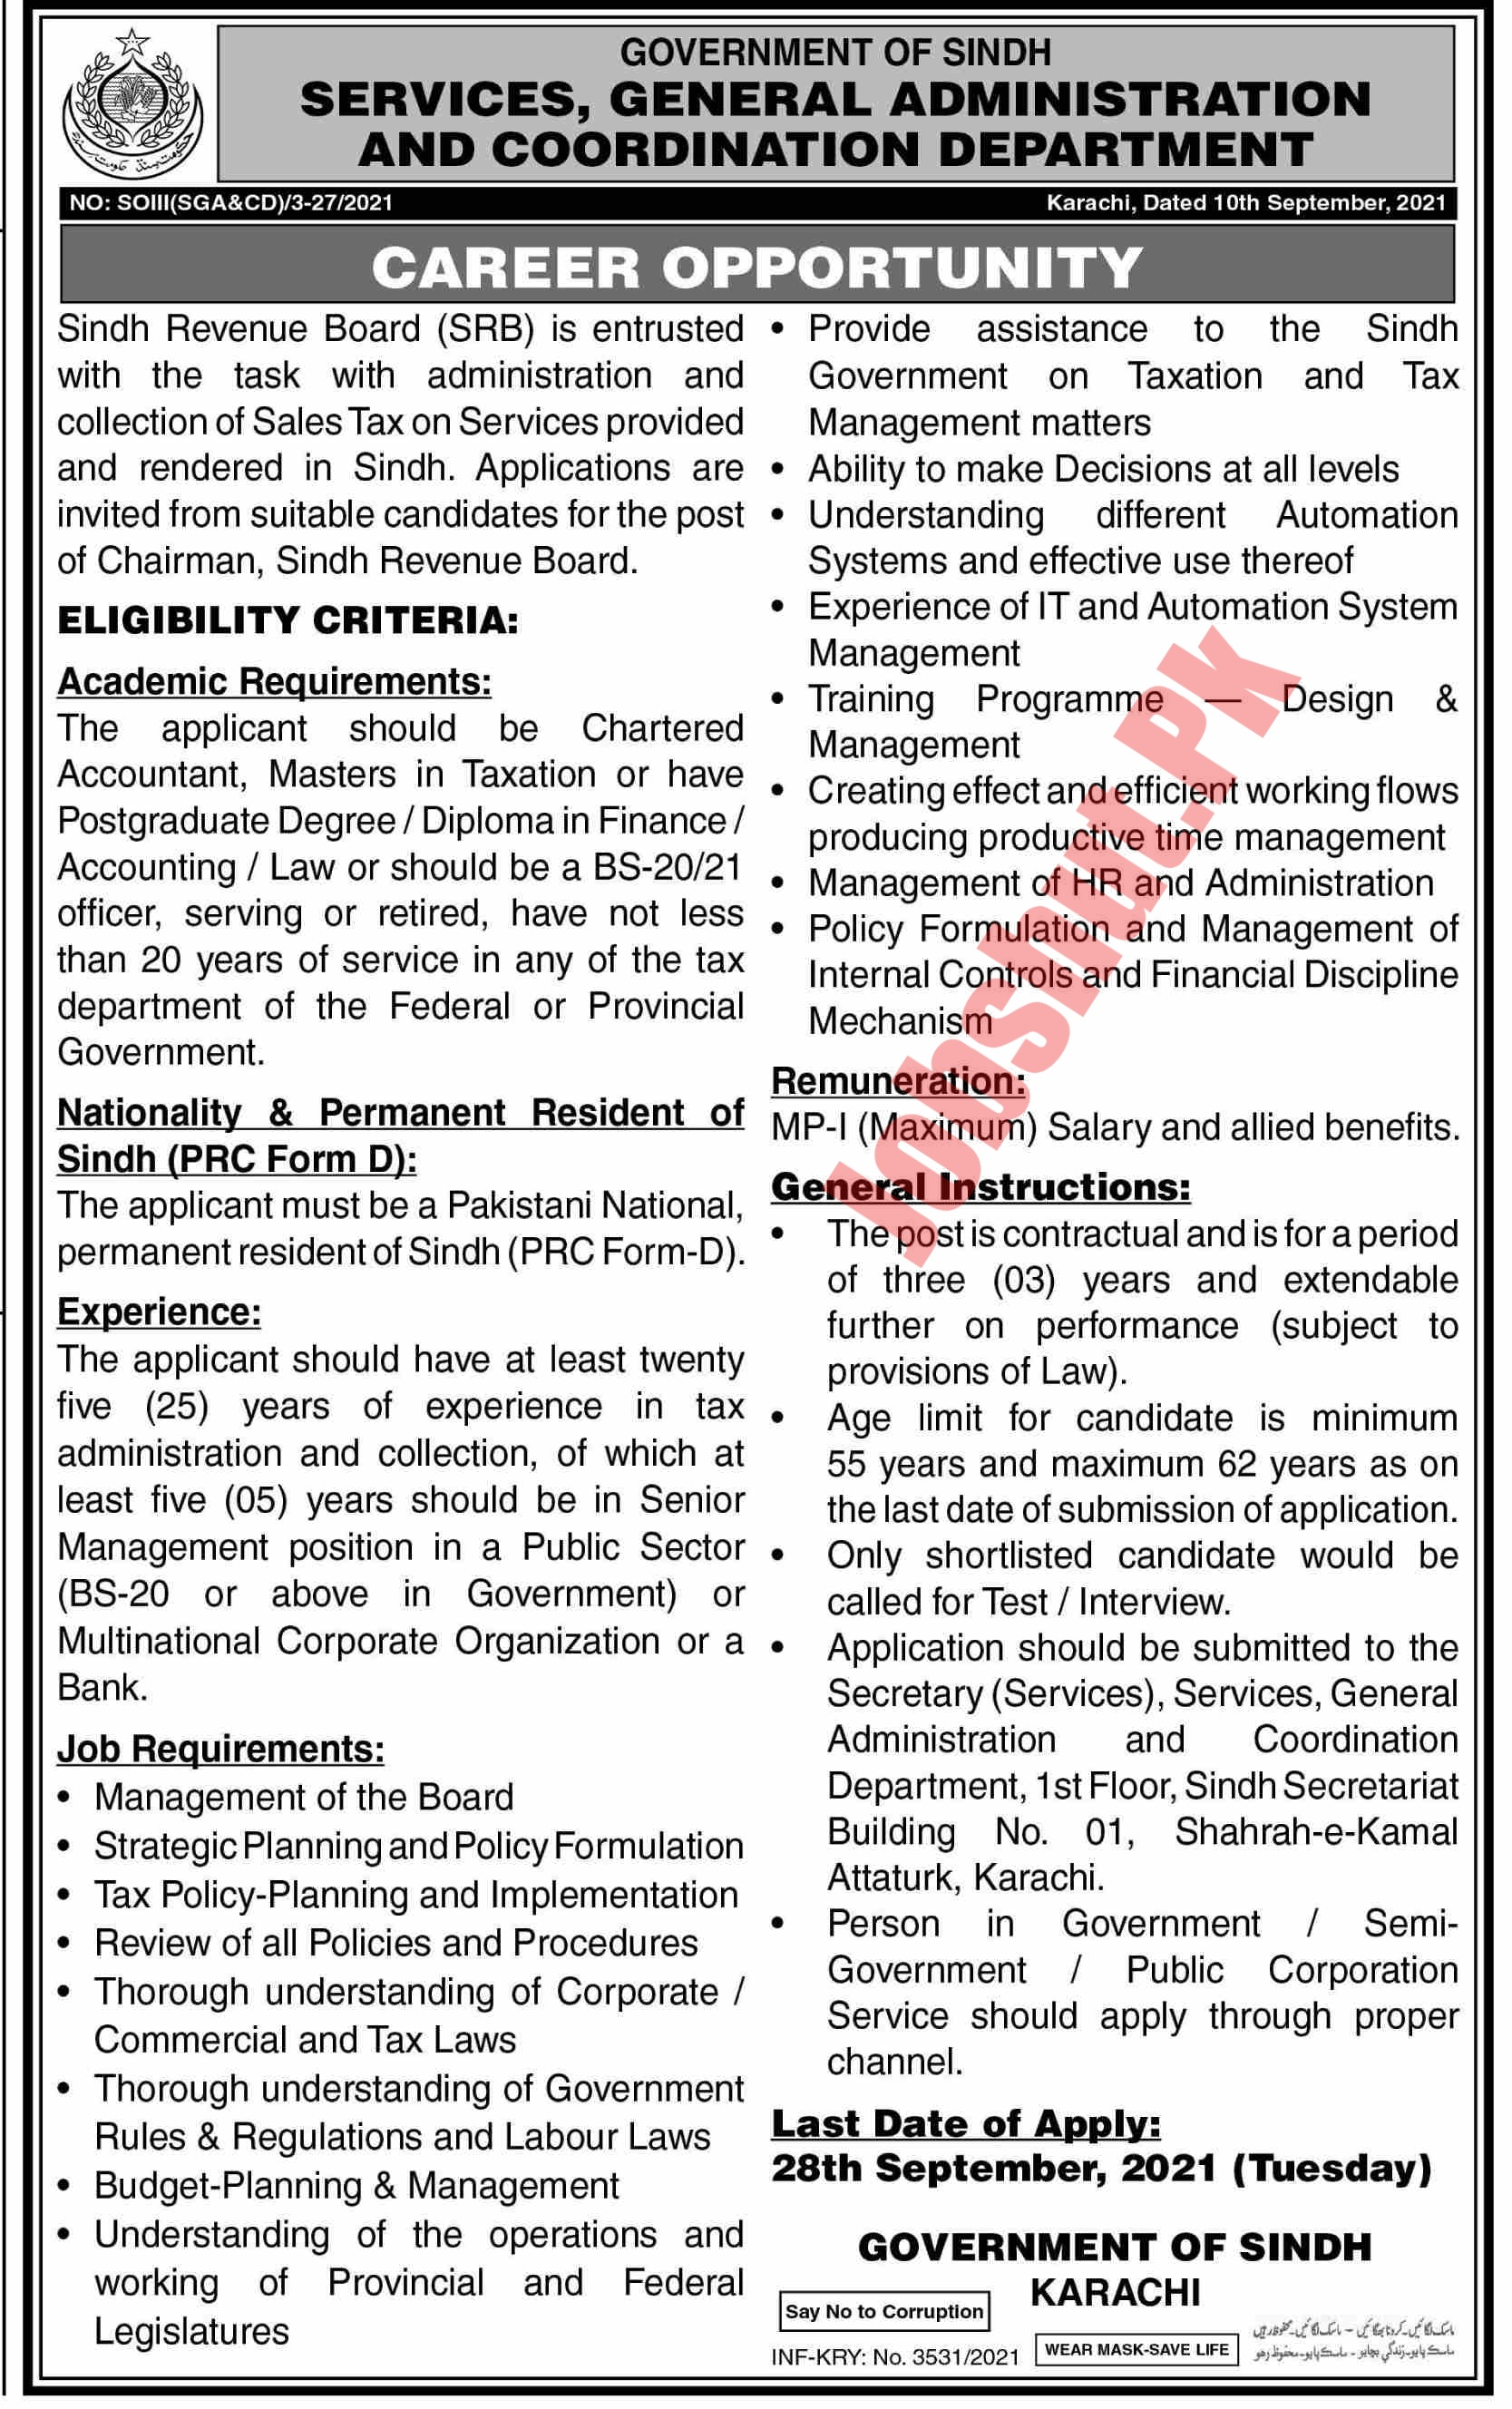 Services and General Administration Department jobs advertisement